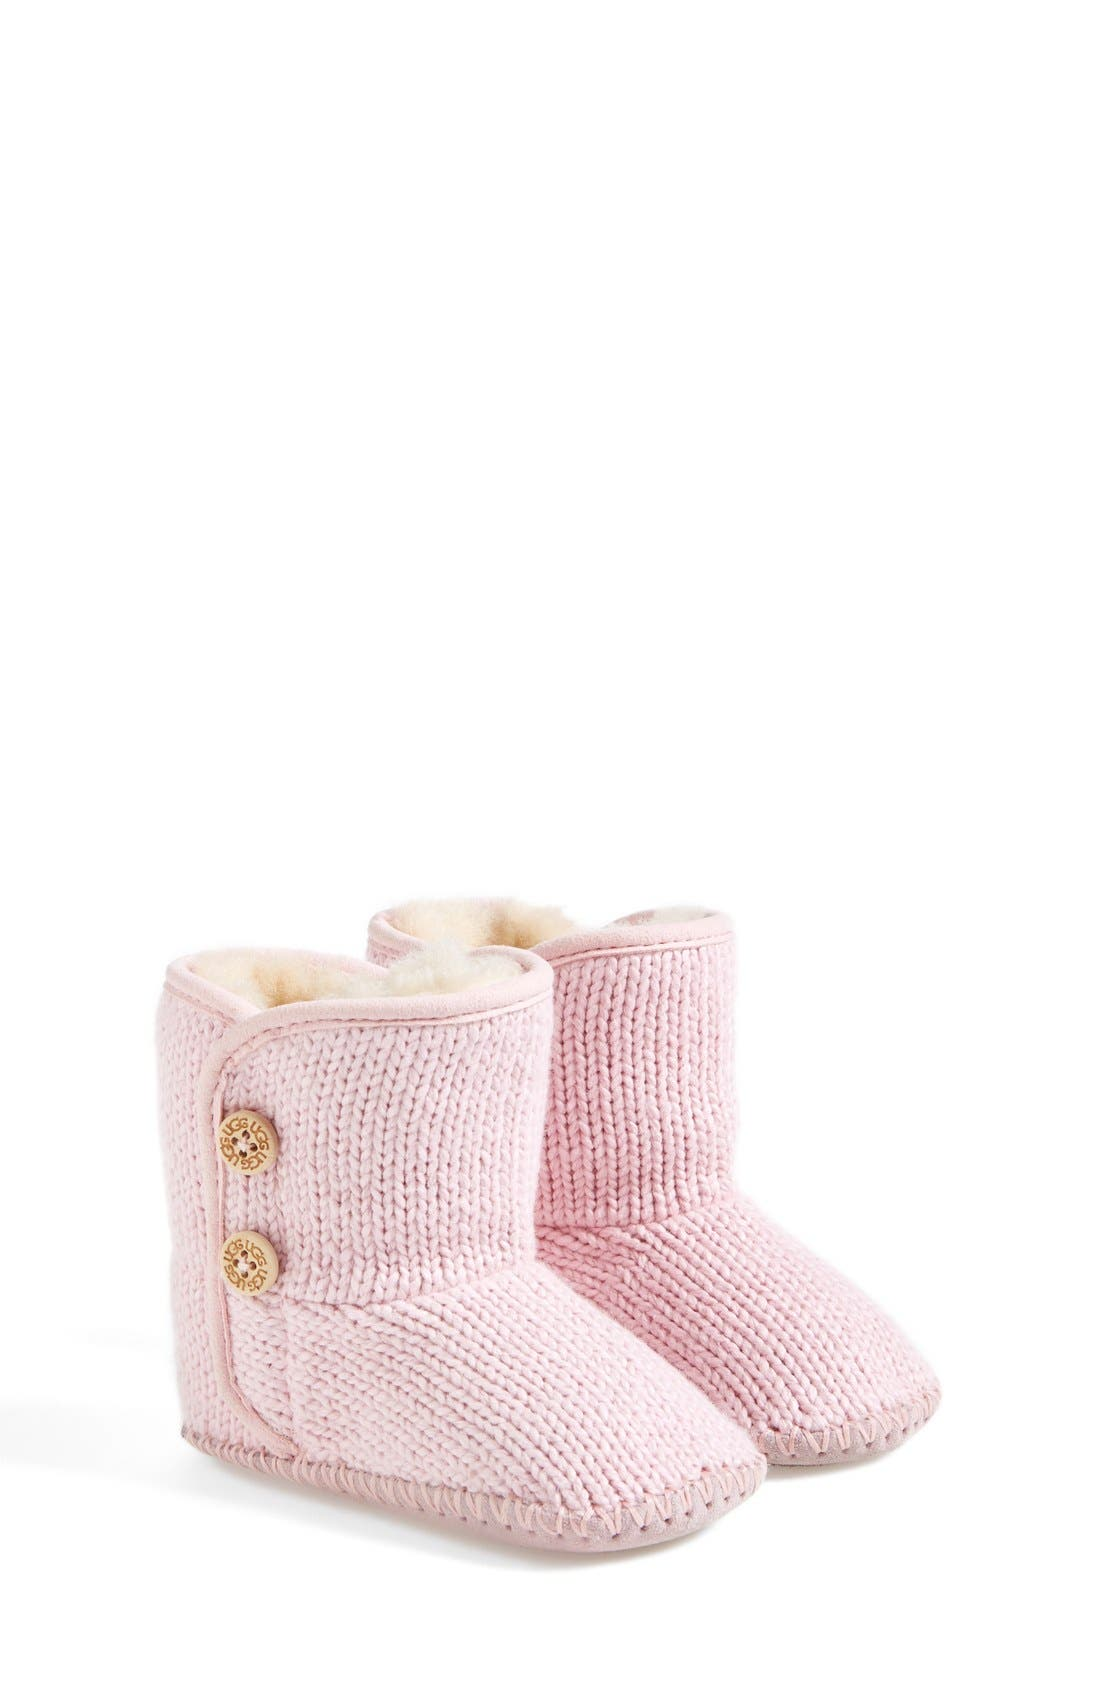 Alternate Image 1 Selected - UGG® Purl Knit Bootie (Baby & Walker)